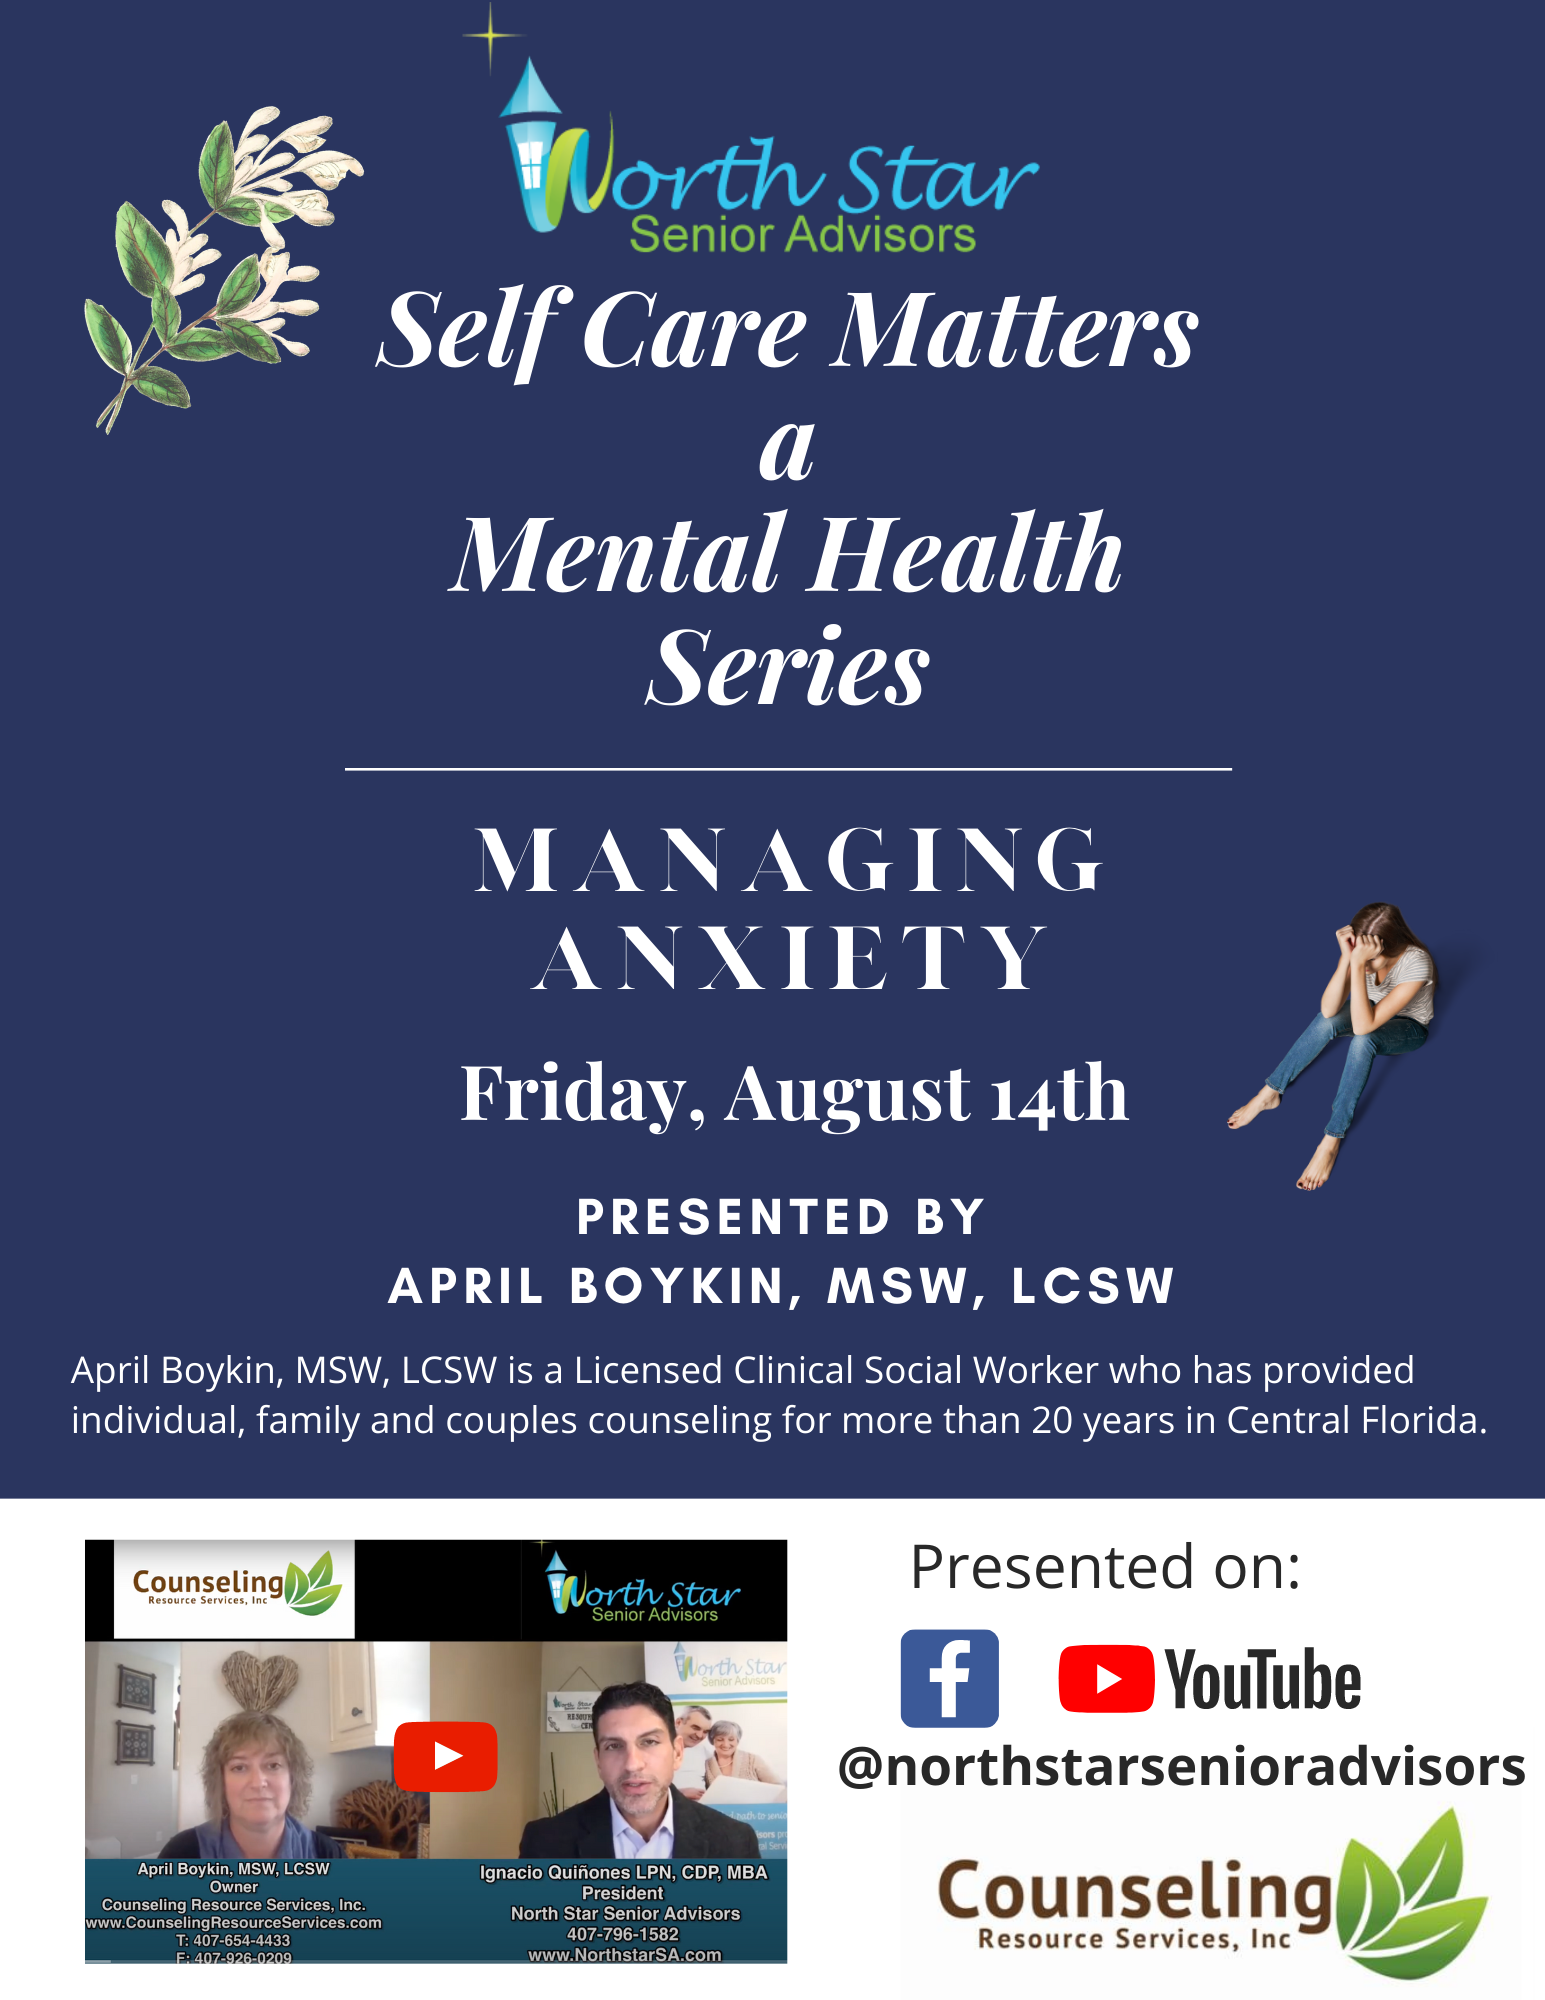 Self Care Matters: a Mental Health Series